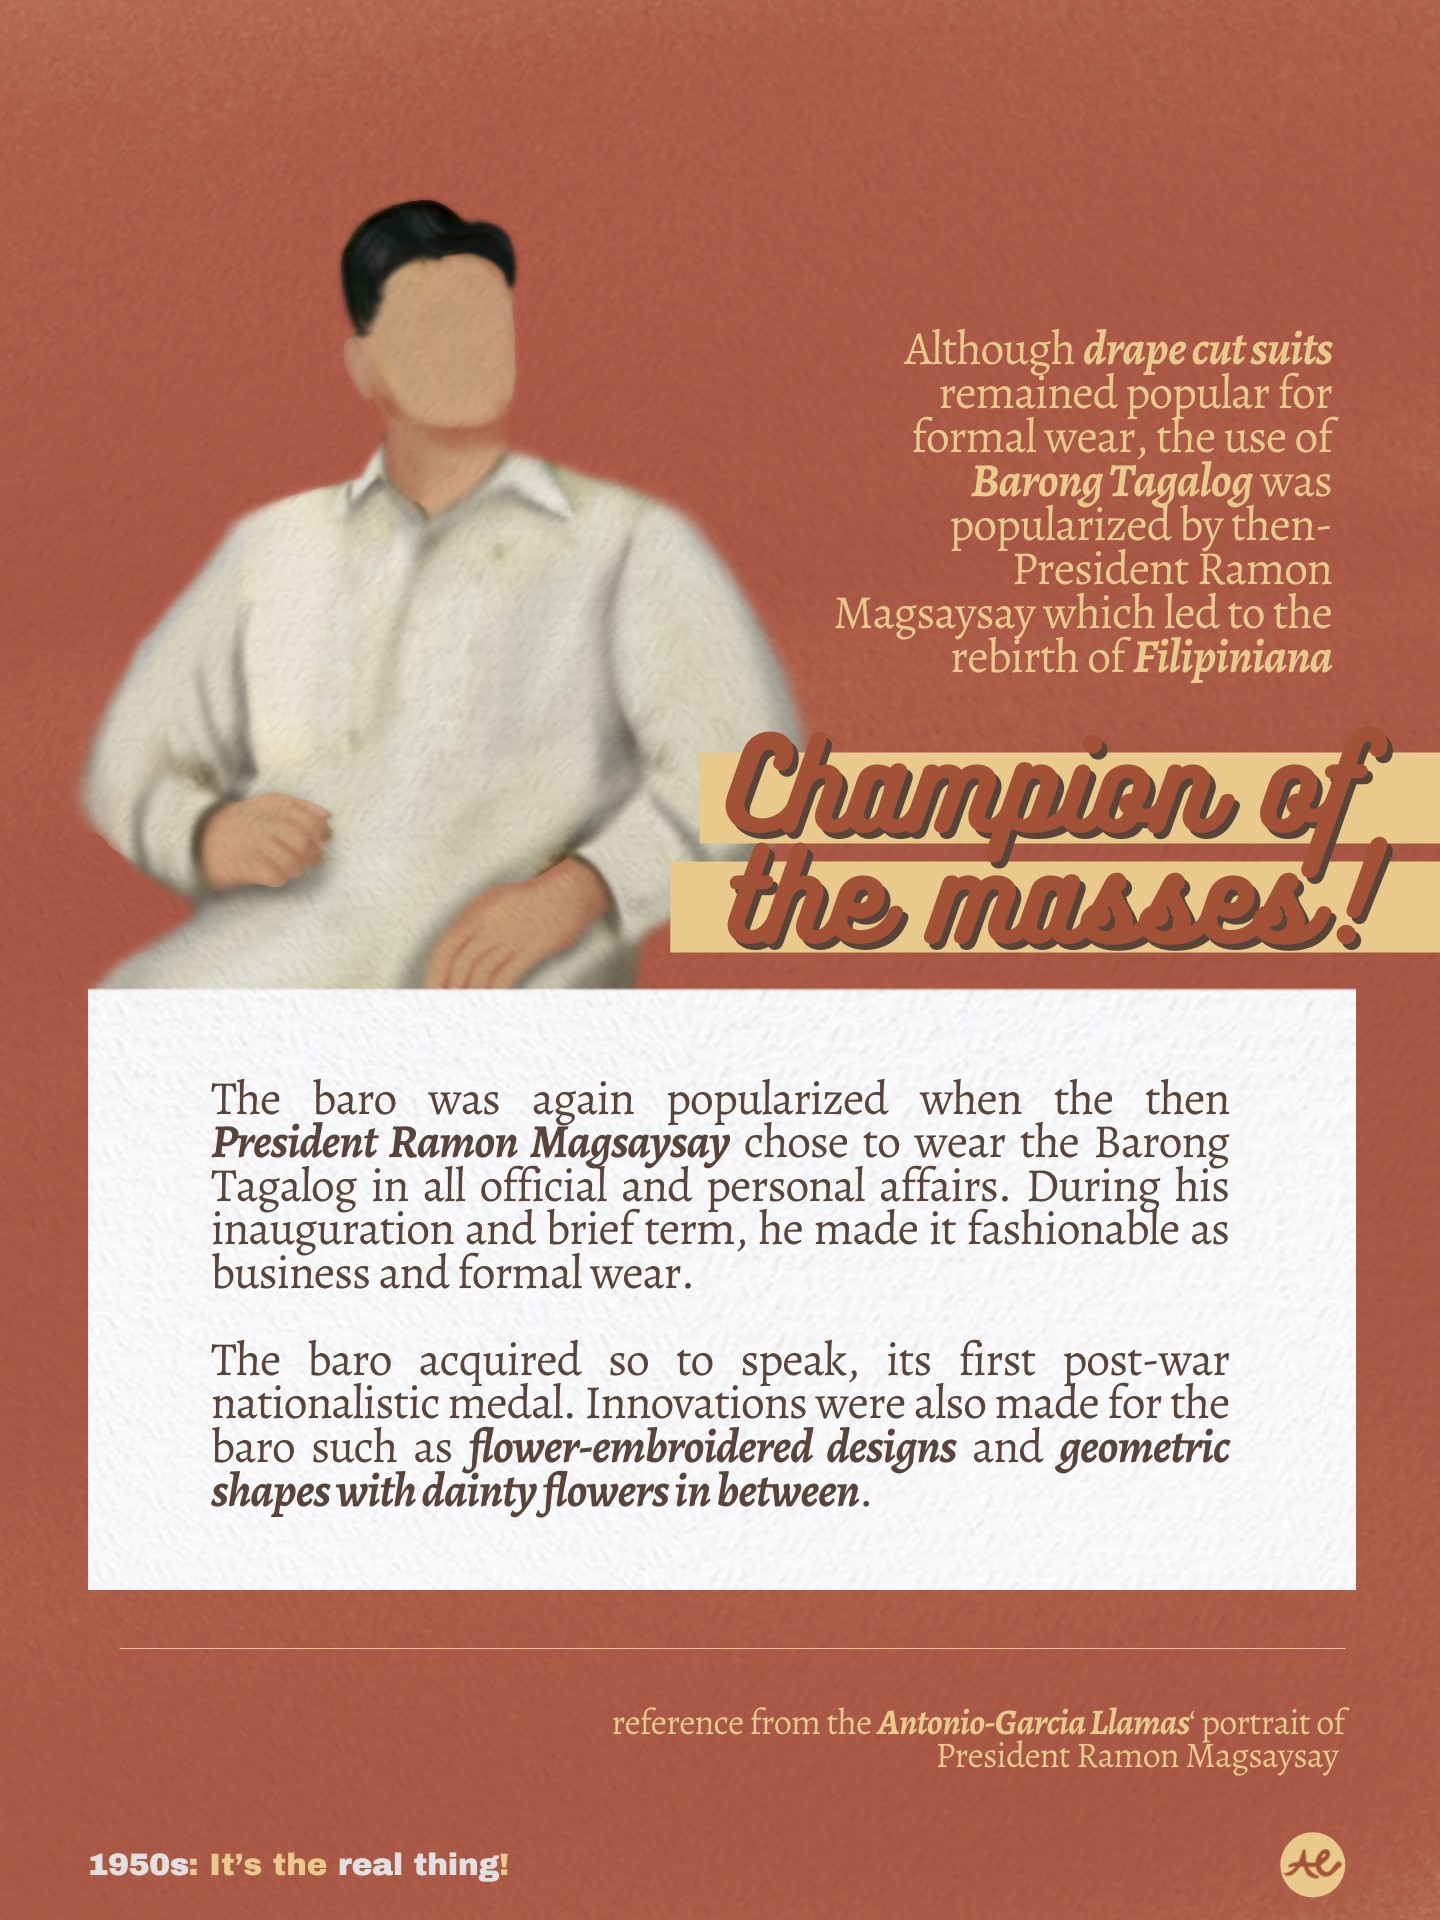 The Barong Tagalog, by Presidential Endorsement